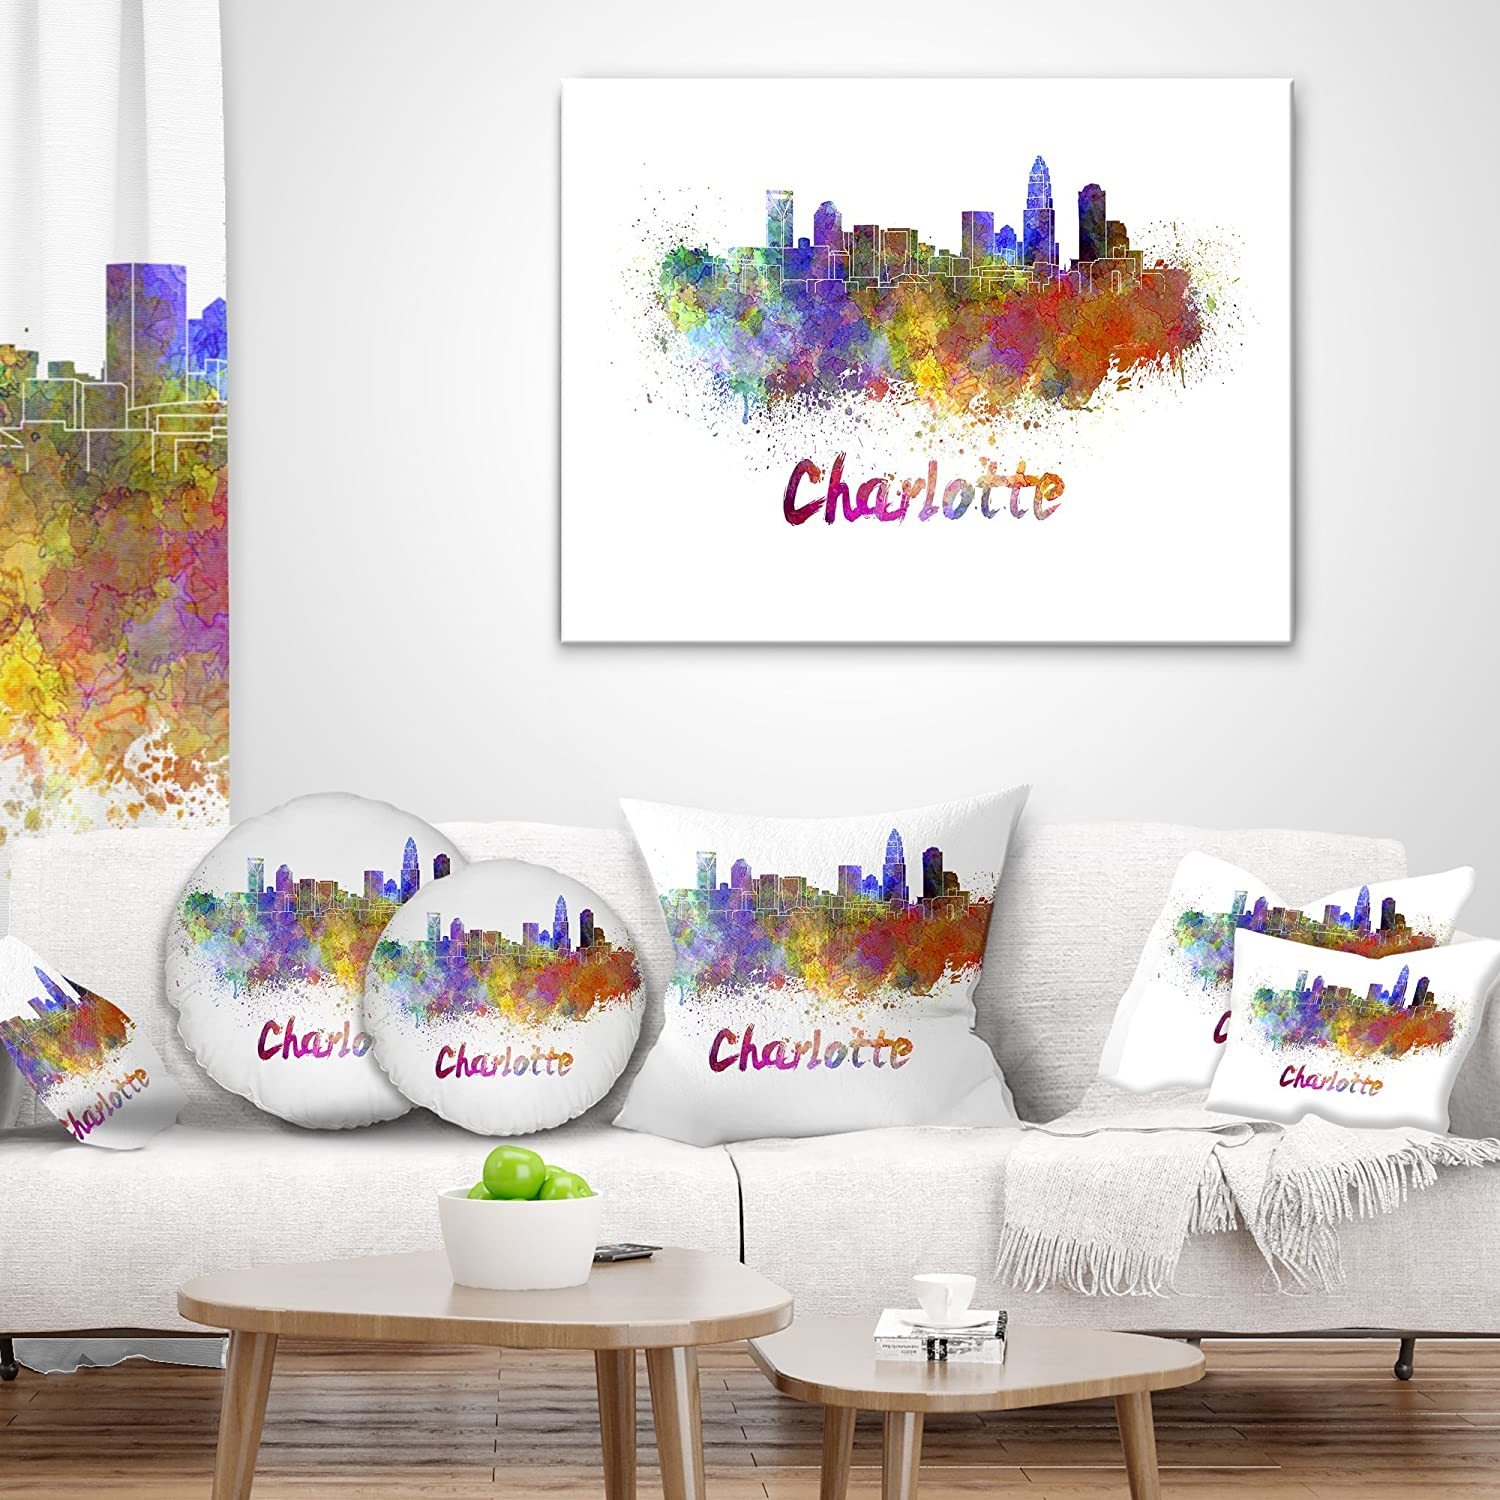 x 18 in Sofa Throw Pillow 18 in Designart CU6580-18-18 Charlotte Skyline Cityscape Cushion Cover for Living Room in